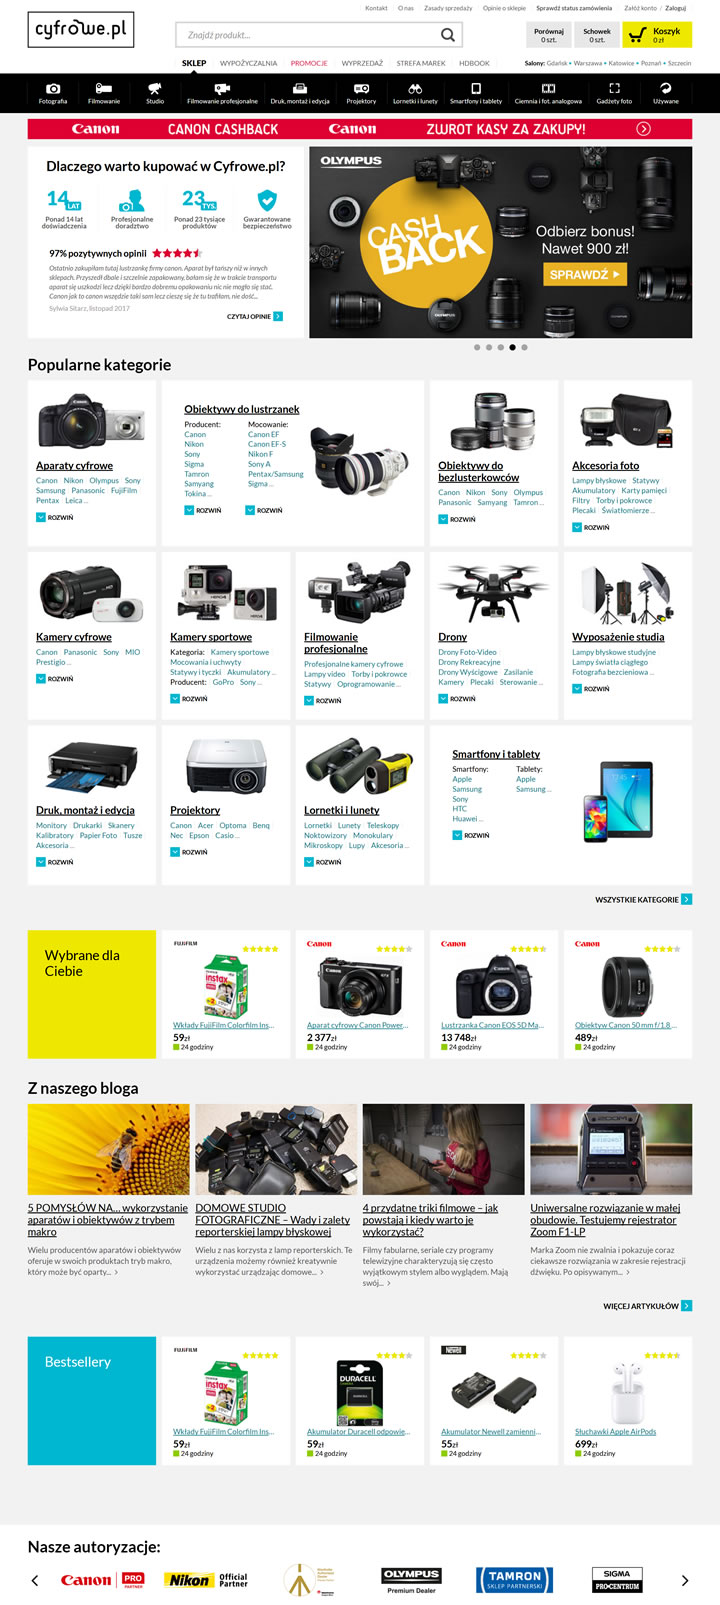 Poland Digital Cameras and Accessories Online Shop Cyfrowe.pl ...